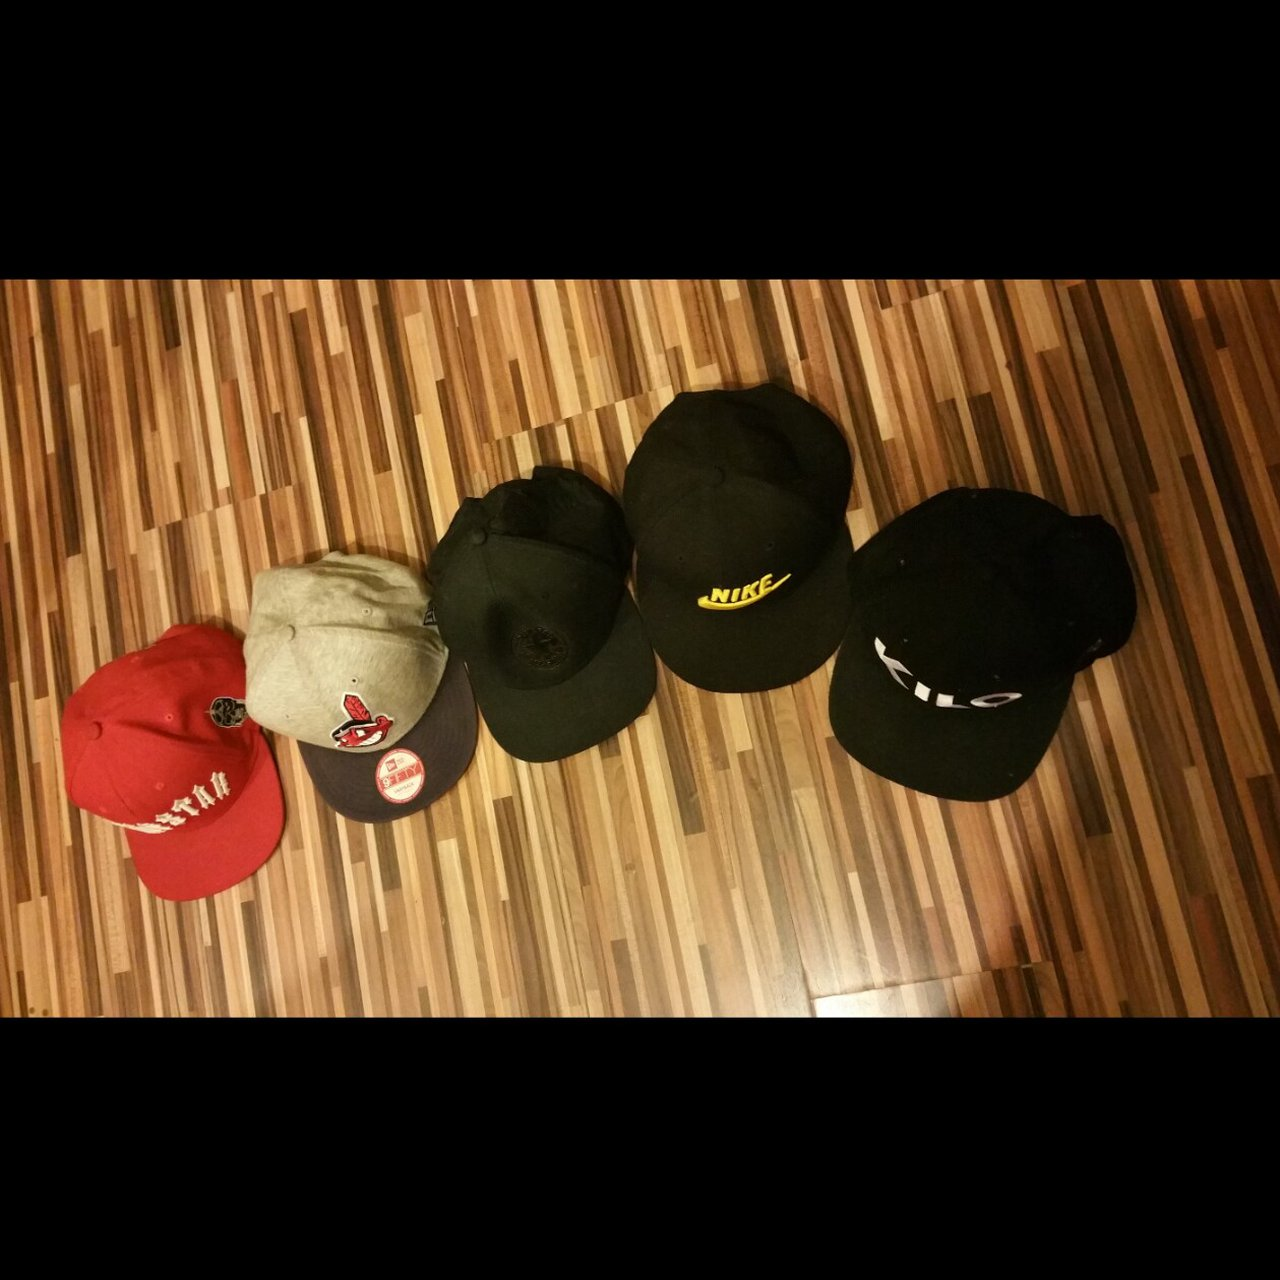 Mens caps for sale all 5 £40 or one for £10...message me if - Depop f1281e6f4446